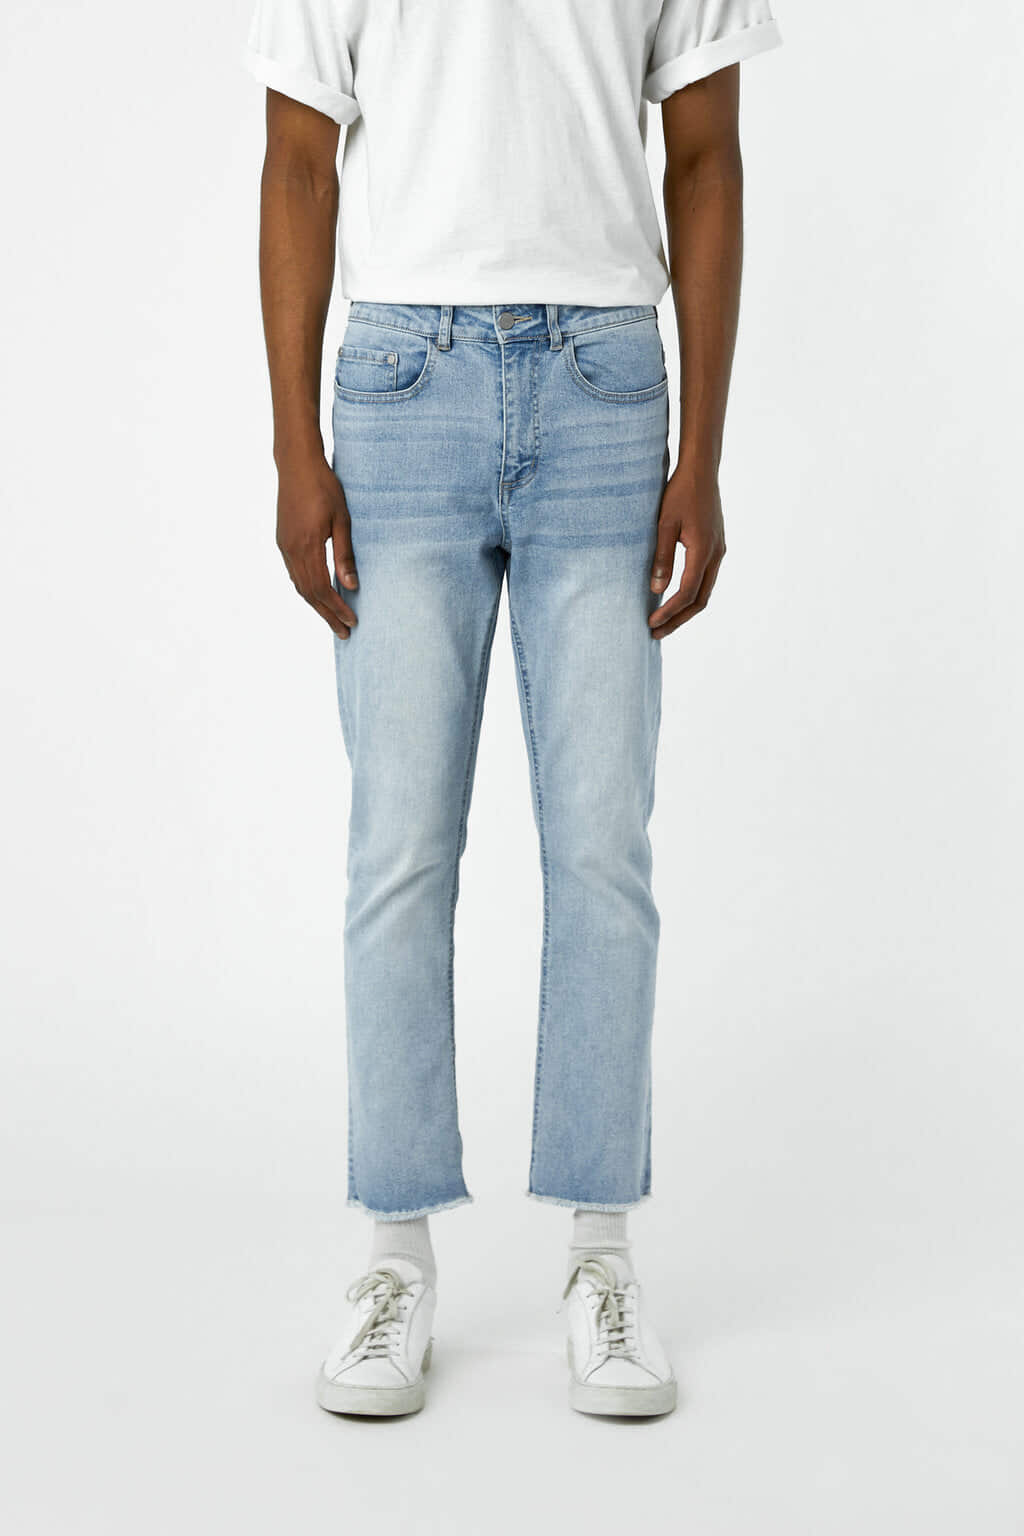 Jean 23722019 Light Indigo 1